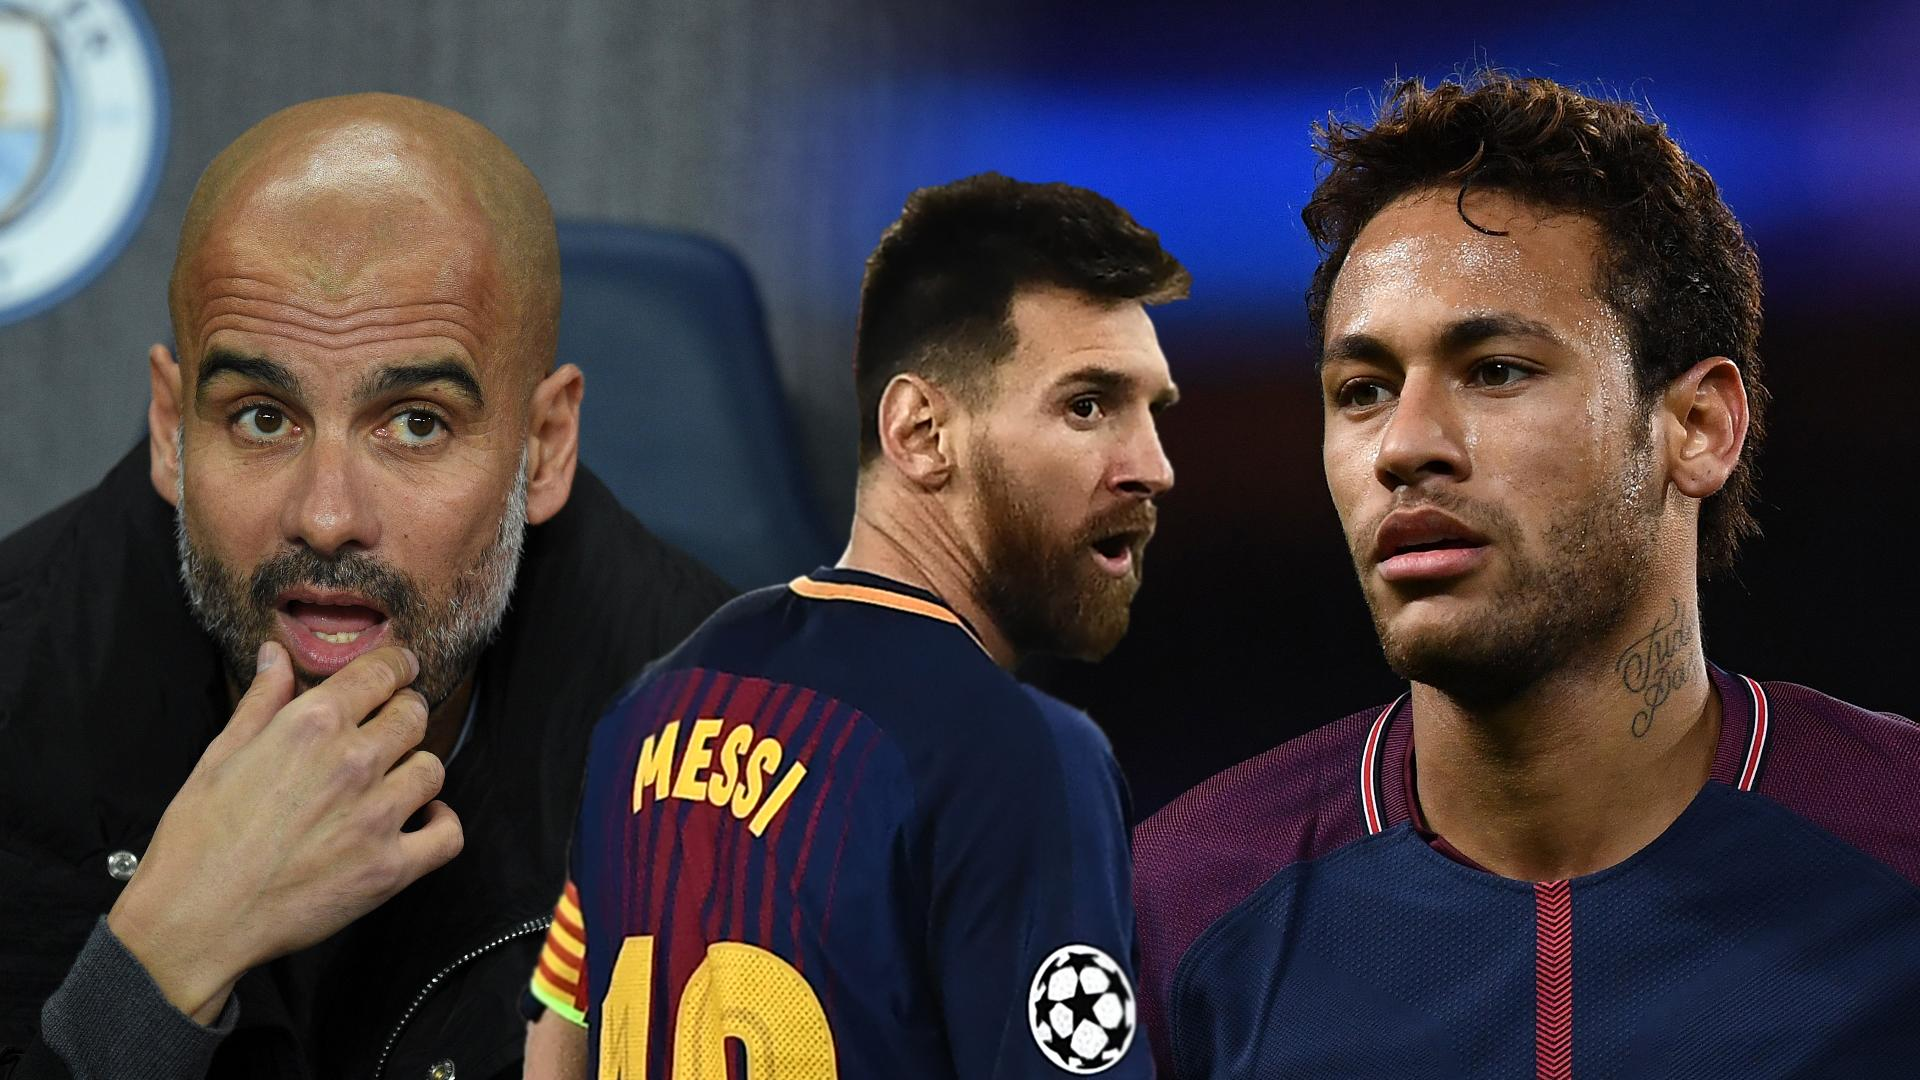 Football salaries: Premier League clubs dominate wages list as Barcelona lead the way